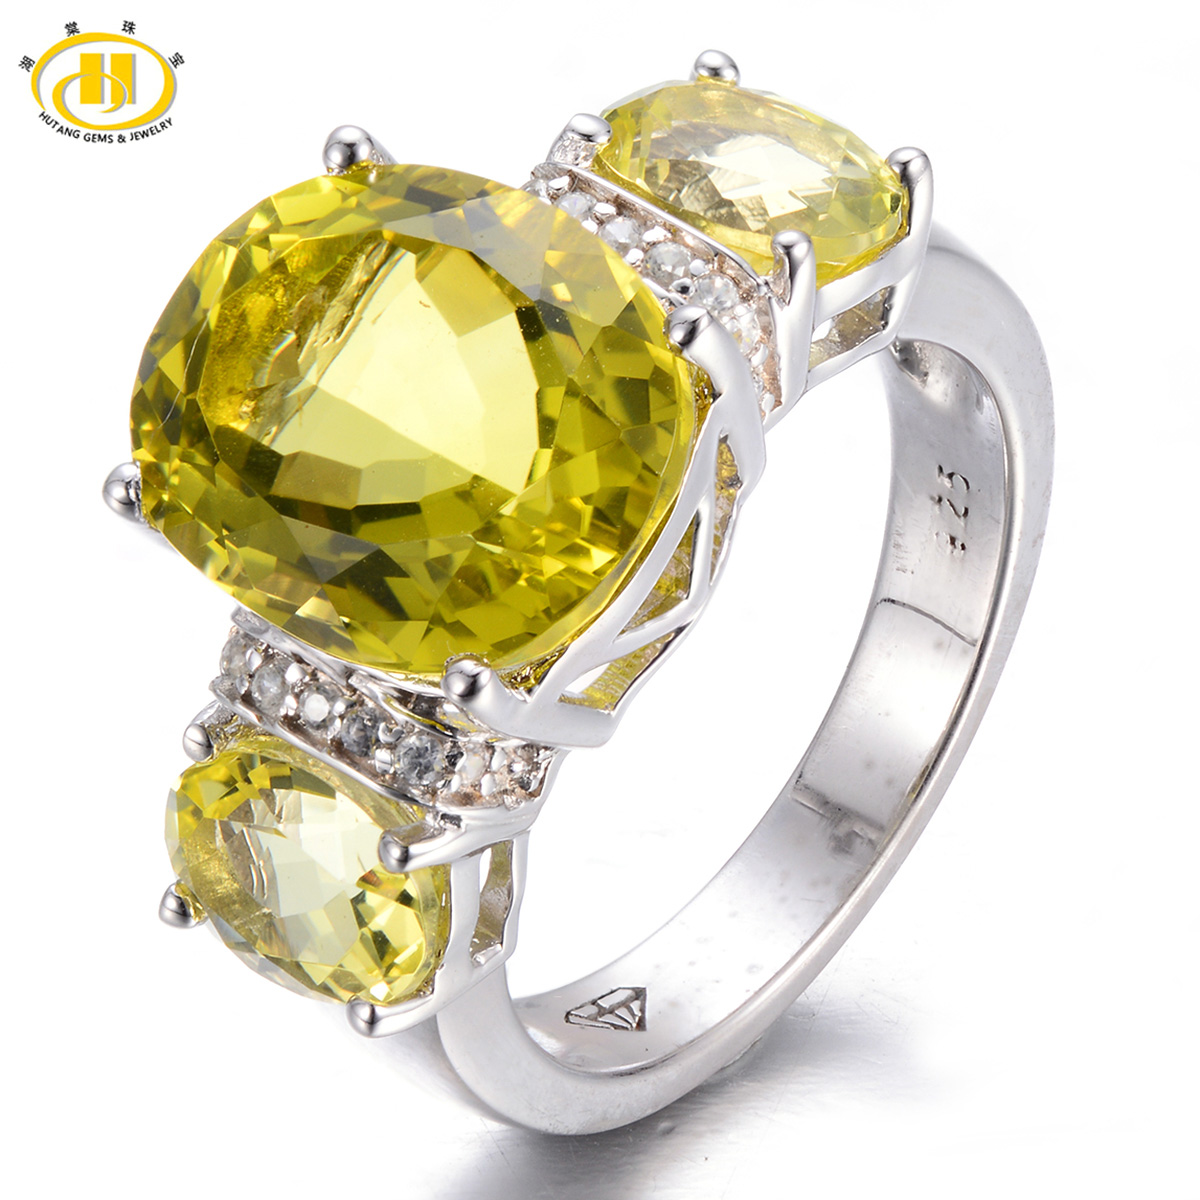 HUTANG 5.198ct Natural Lemon Quartz Solid 925 Sterling Silver Cocktail Ring Gemstone New Arrival Fine Jewelry Women's Rings